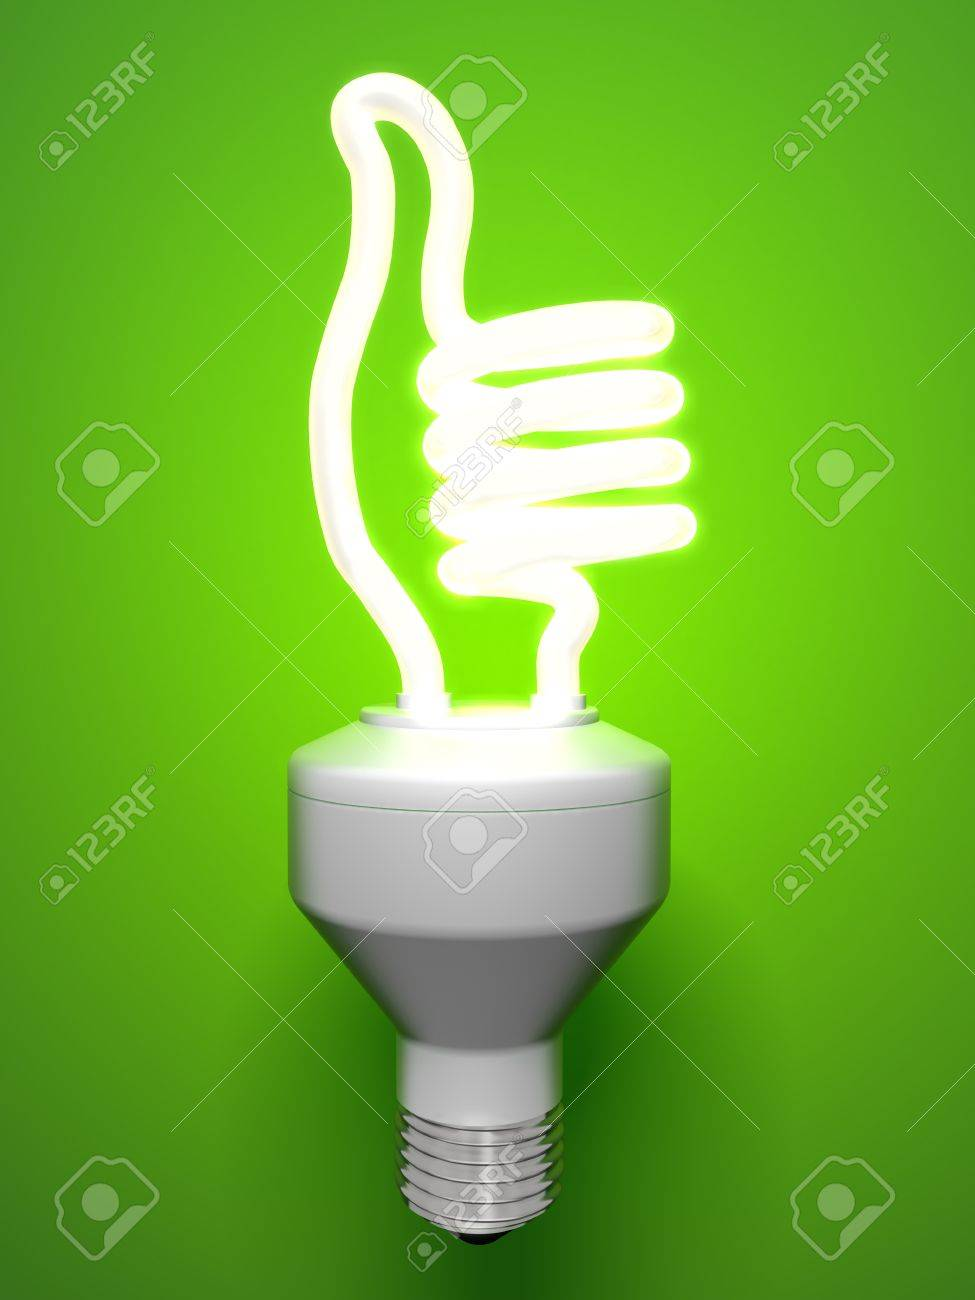 Thumbs Up Compact Fluorescent Lamp Stock Photo - 8431005